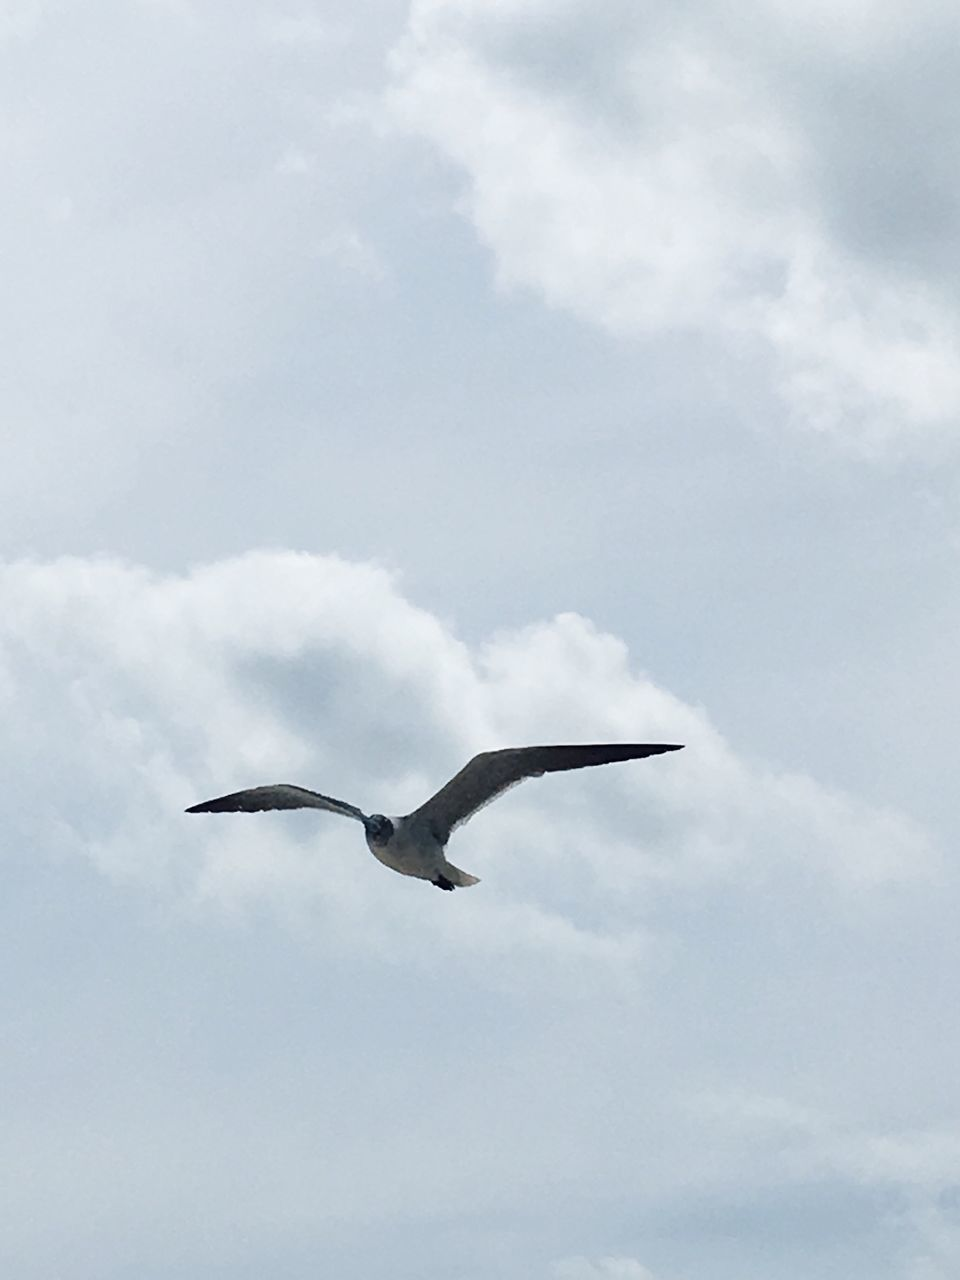 flying, one animal, animals in the wild, animal themes, cloud - sky, bird, spread wings, sky, day, low angle view, mid-air, animal wildlife, nature, outdoors, no people, beauty in nature